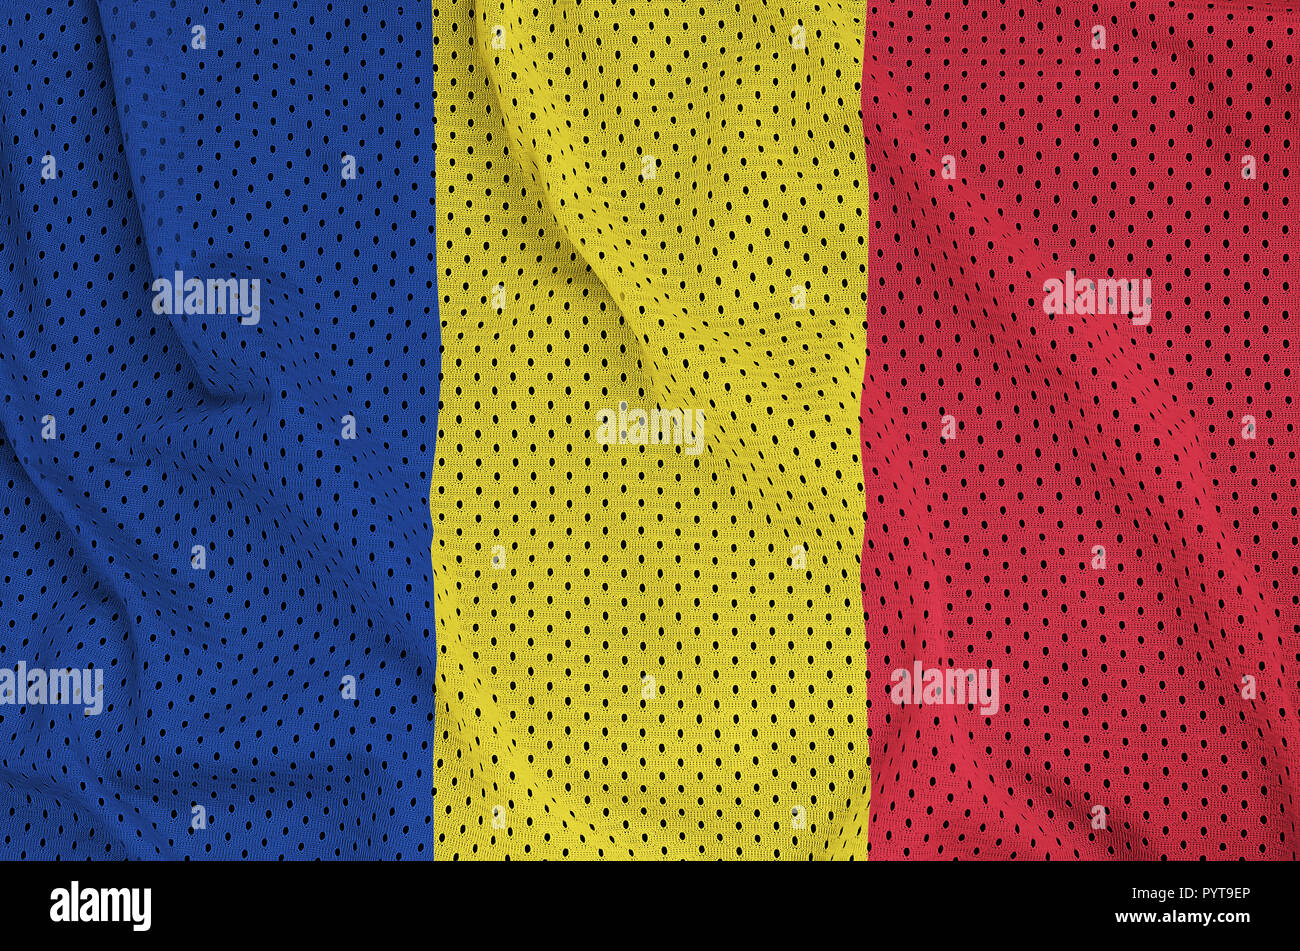 Romania flag printed on a polyester nylon sportswear mesh fabric with some folds - Stock Image